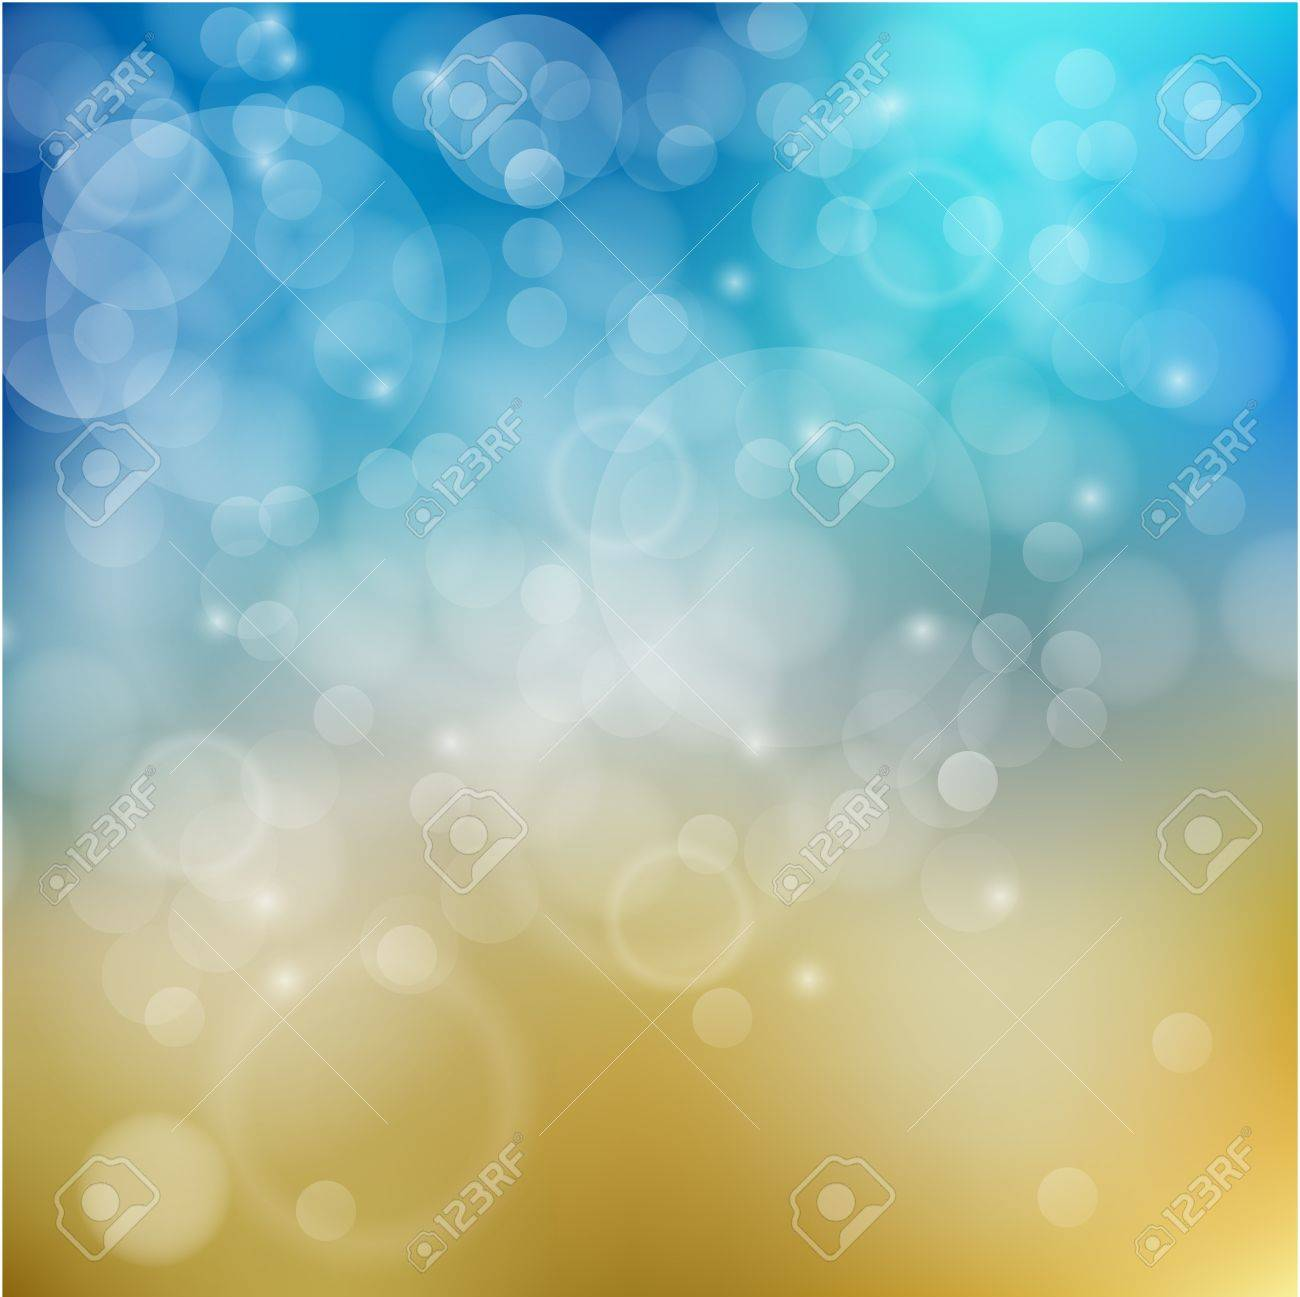 Light blue with yellow background Stock Vector - 17676334